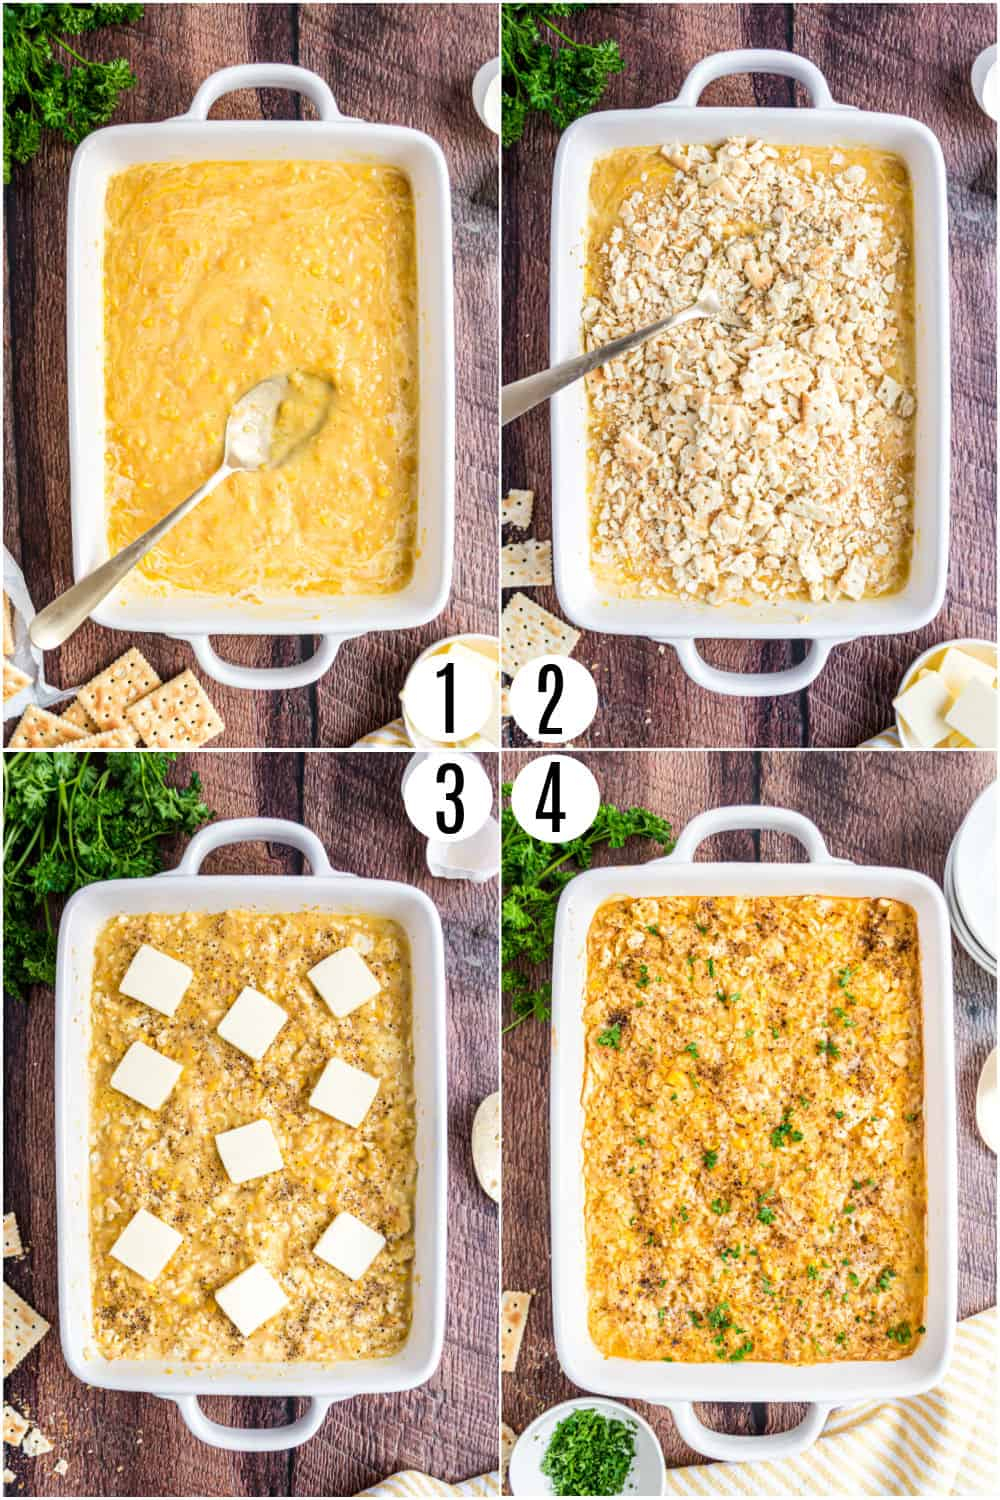 Step by step photos showing how to make corn casserole.